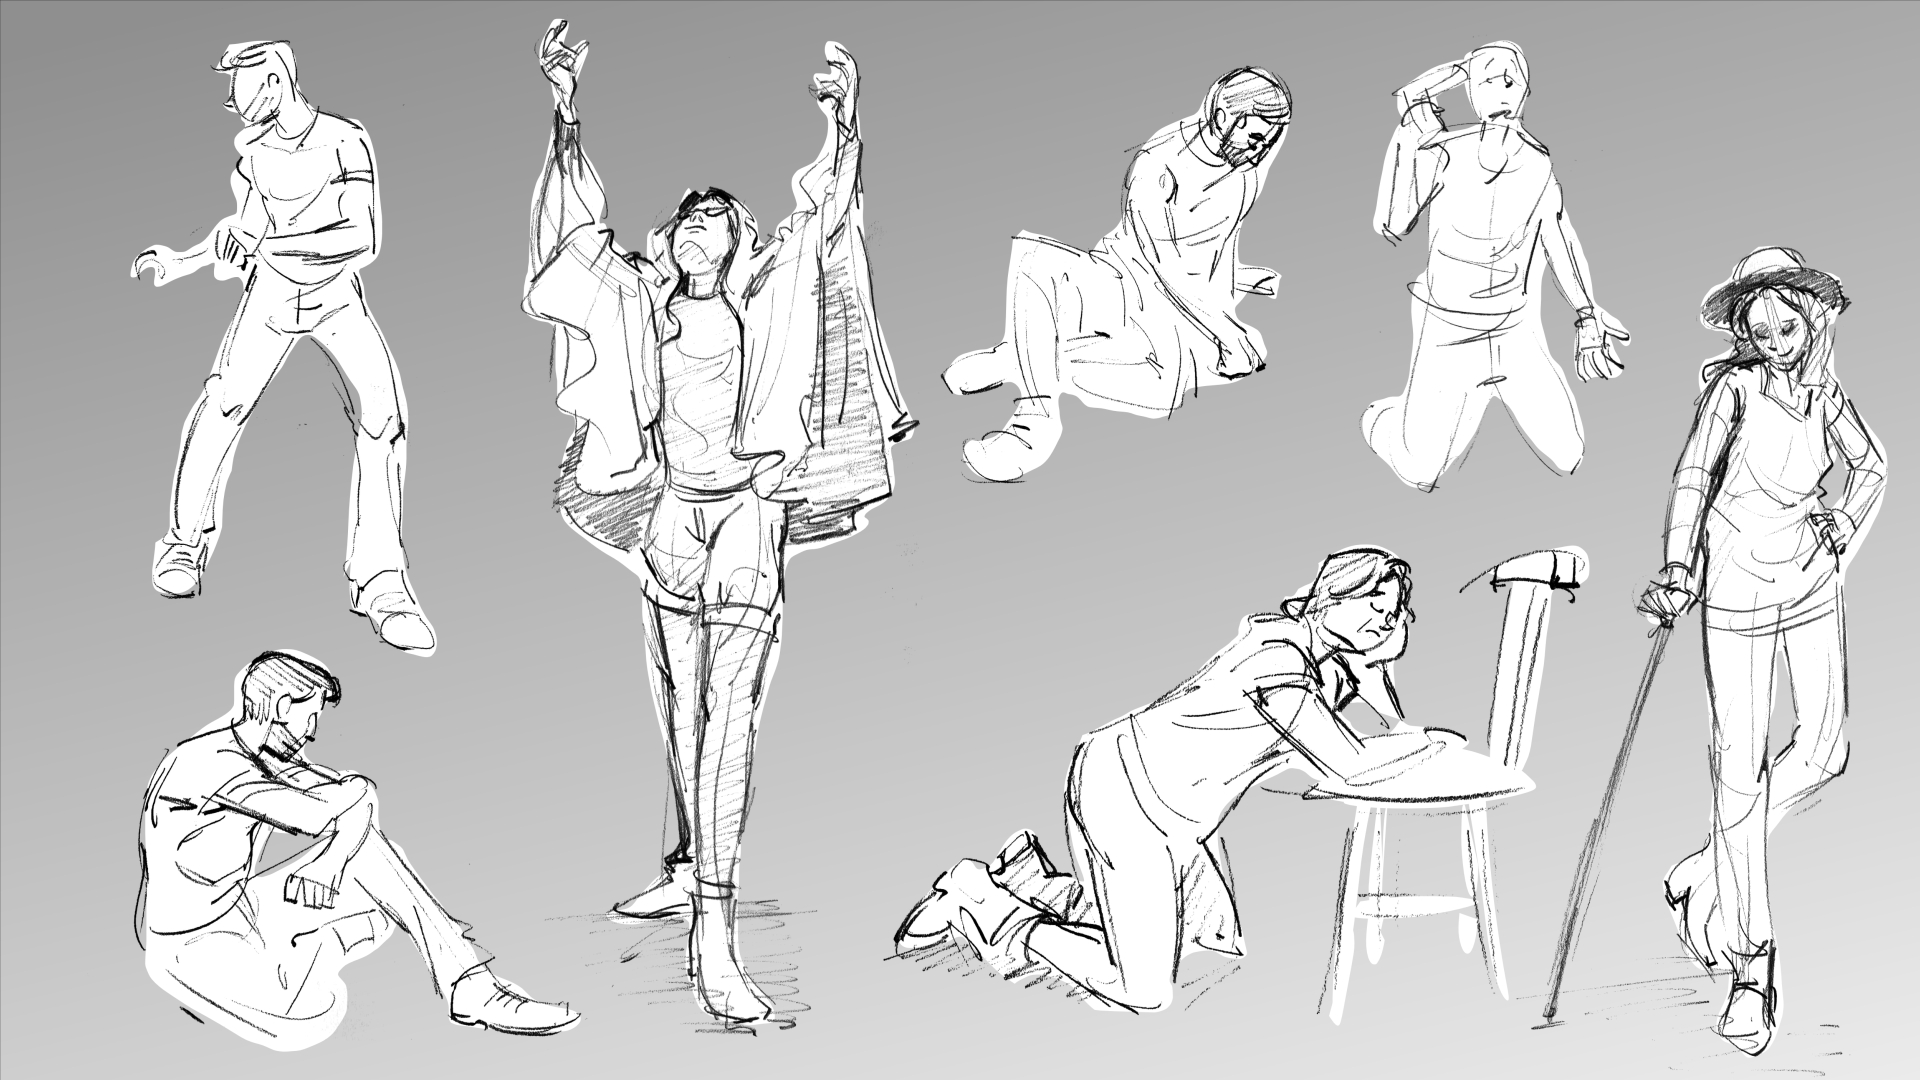 Lifedrawing - 30 sec to 5 min